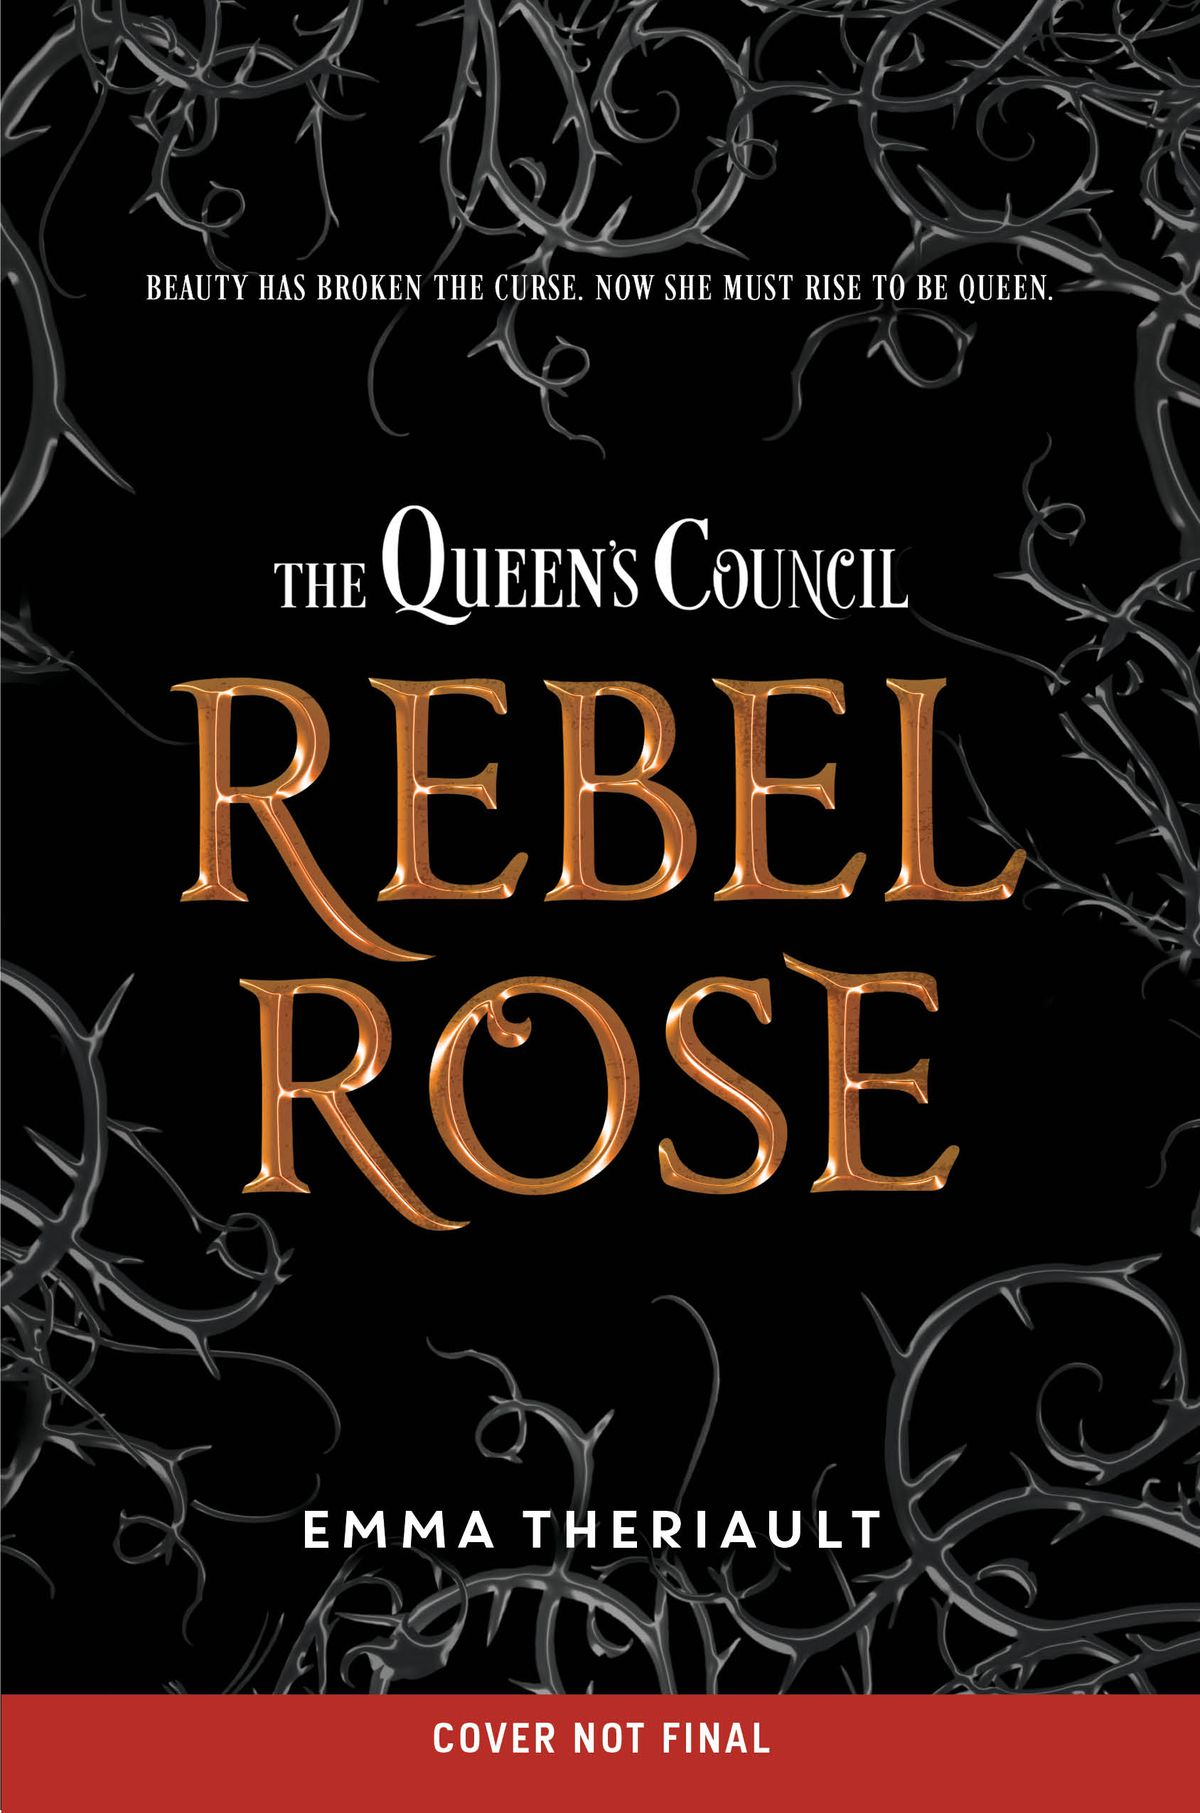 a mockup title for The Queen's Council: Rebel Rose